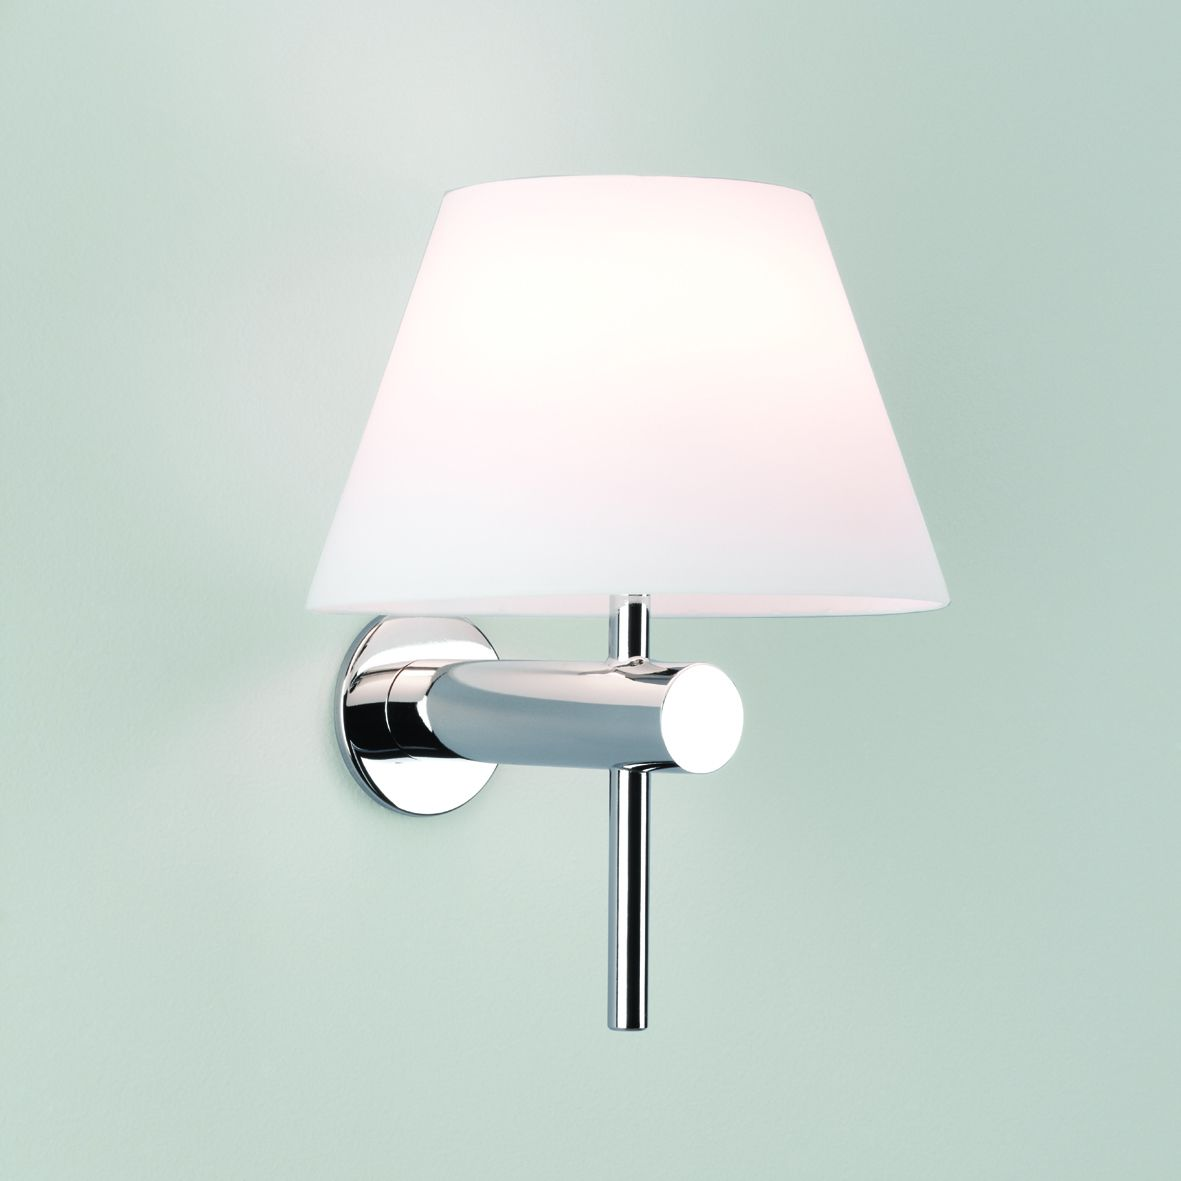 Wall Mounted Picture Lamps : Wall lamps - lighting fixtures that are mounted on walls Warisan Lighting